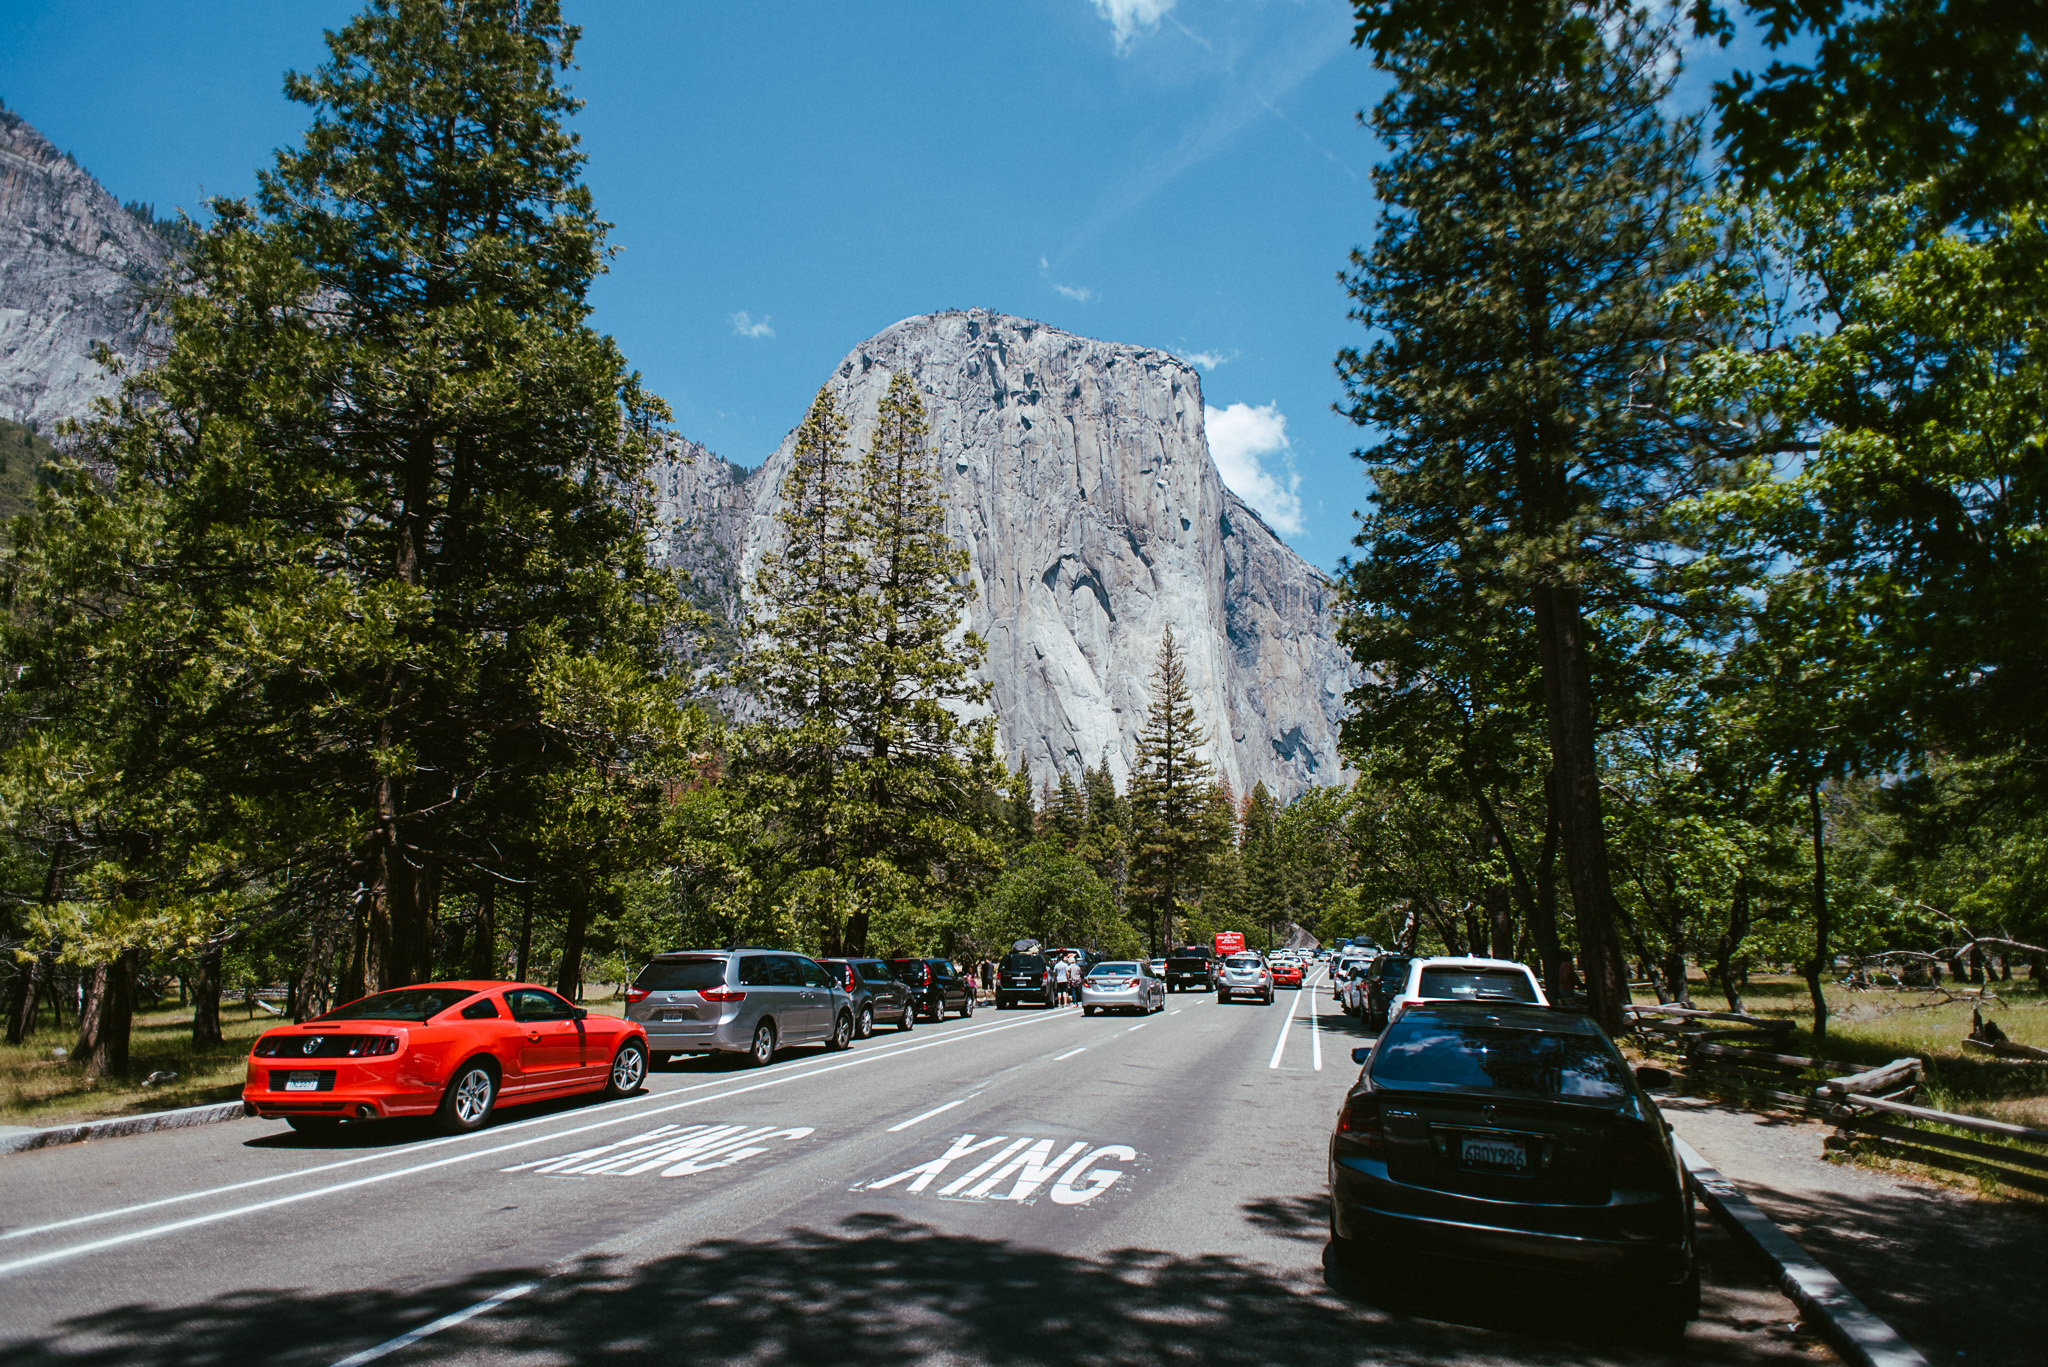 el-capitan-yosemite-nationalpark-100